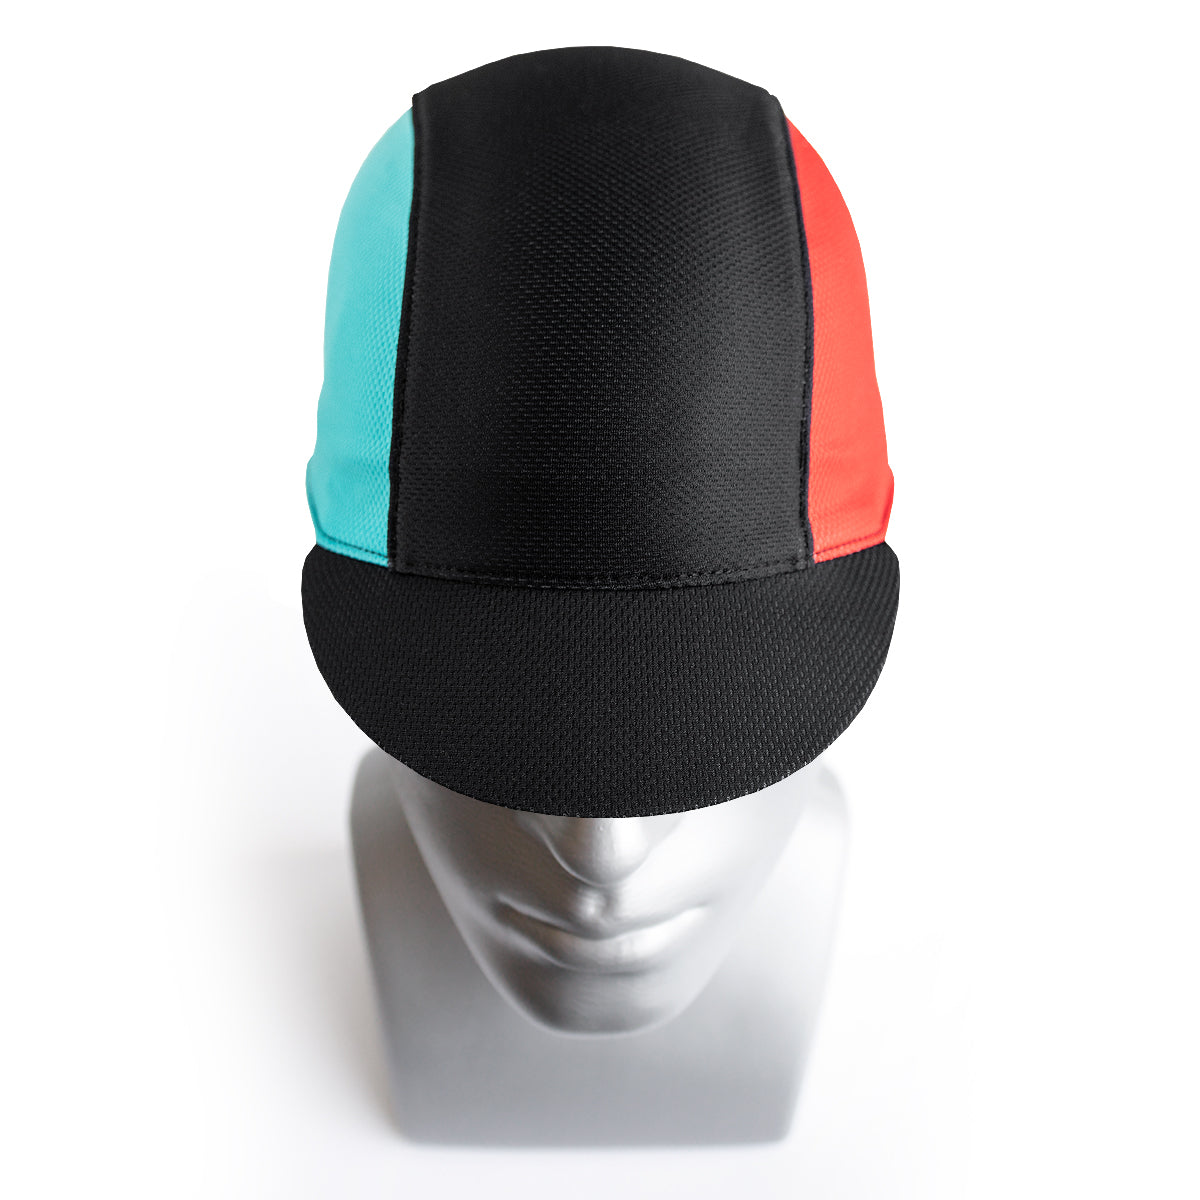 Motor (TEAL) Tech Cap